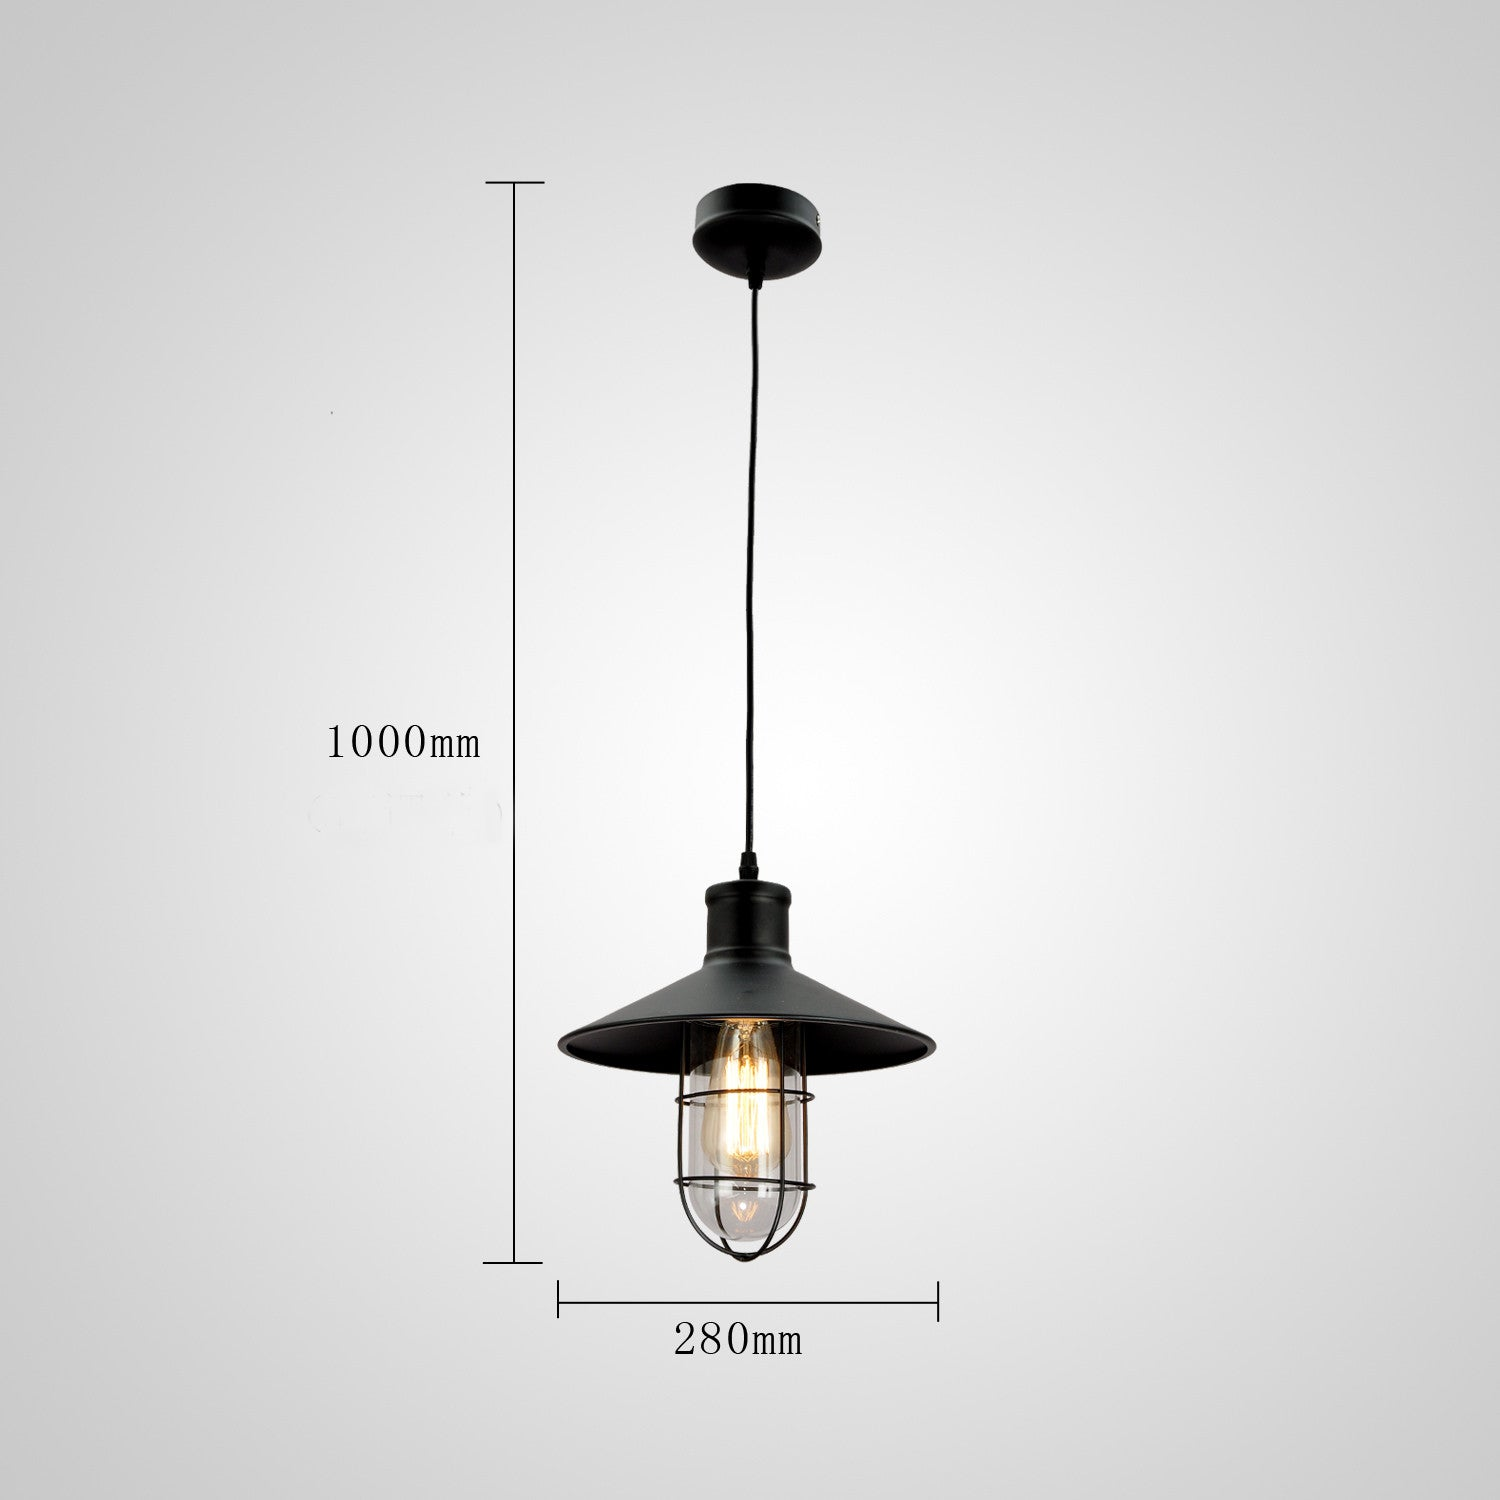 pendant industrial led vintage lighting itm chandelier ceiling light bar lamp